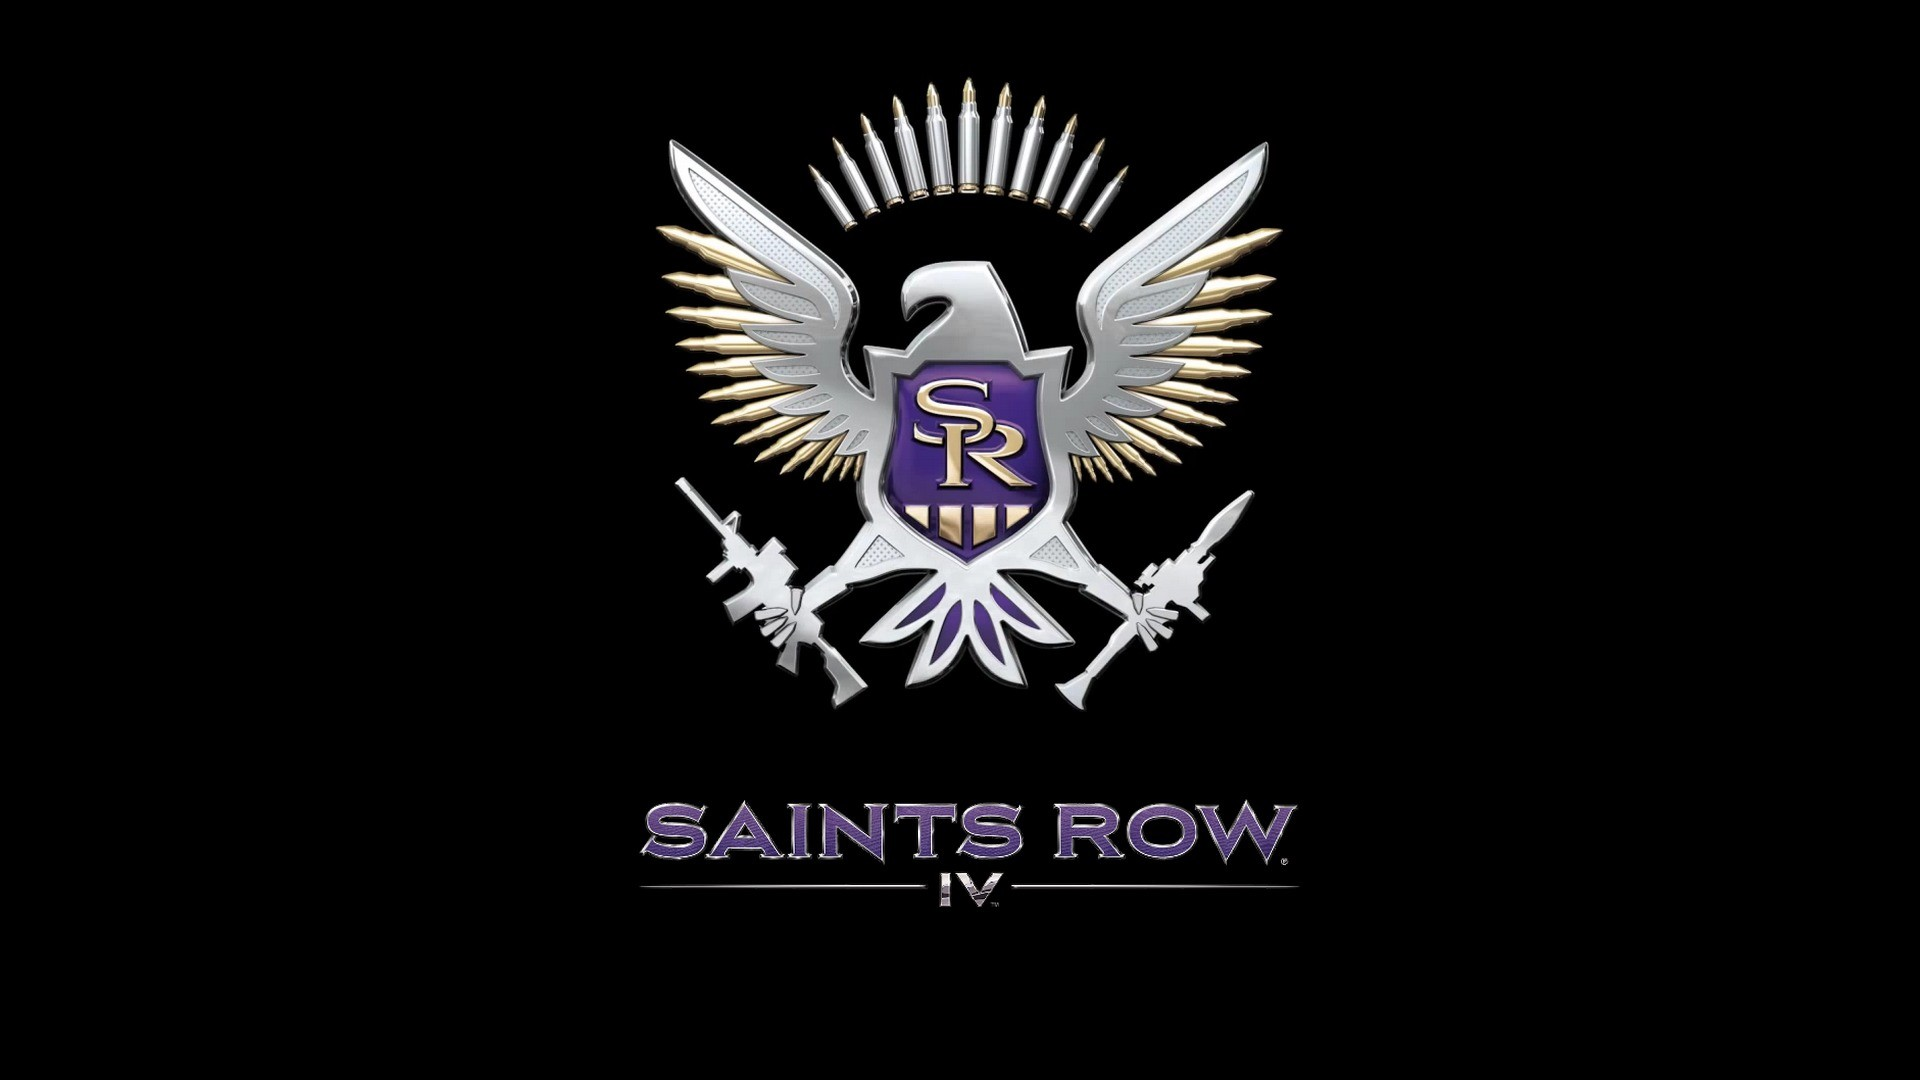 1920x1080 Saints Row Images, Saints Row Wallpapers - Willia Lanza for PC & Mac,  Laptop, Tablet, Mobile Phone